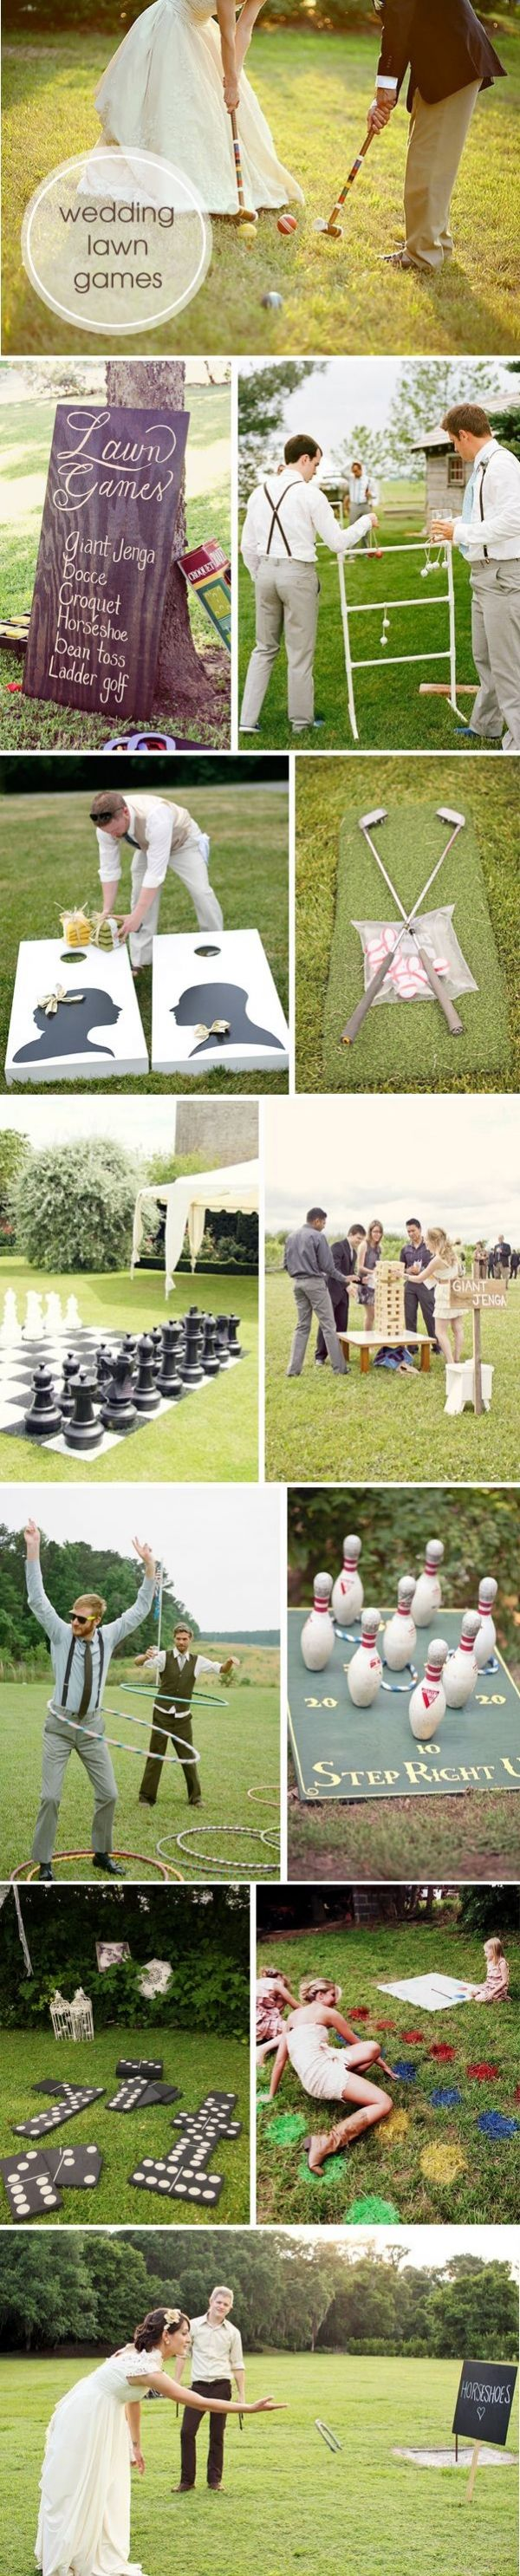 51 Ideas for Your Outdoor Wedding ...